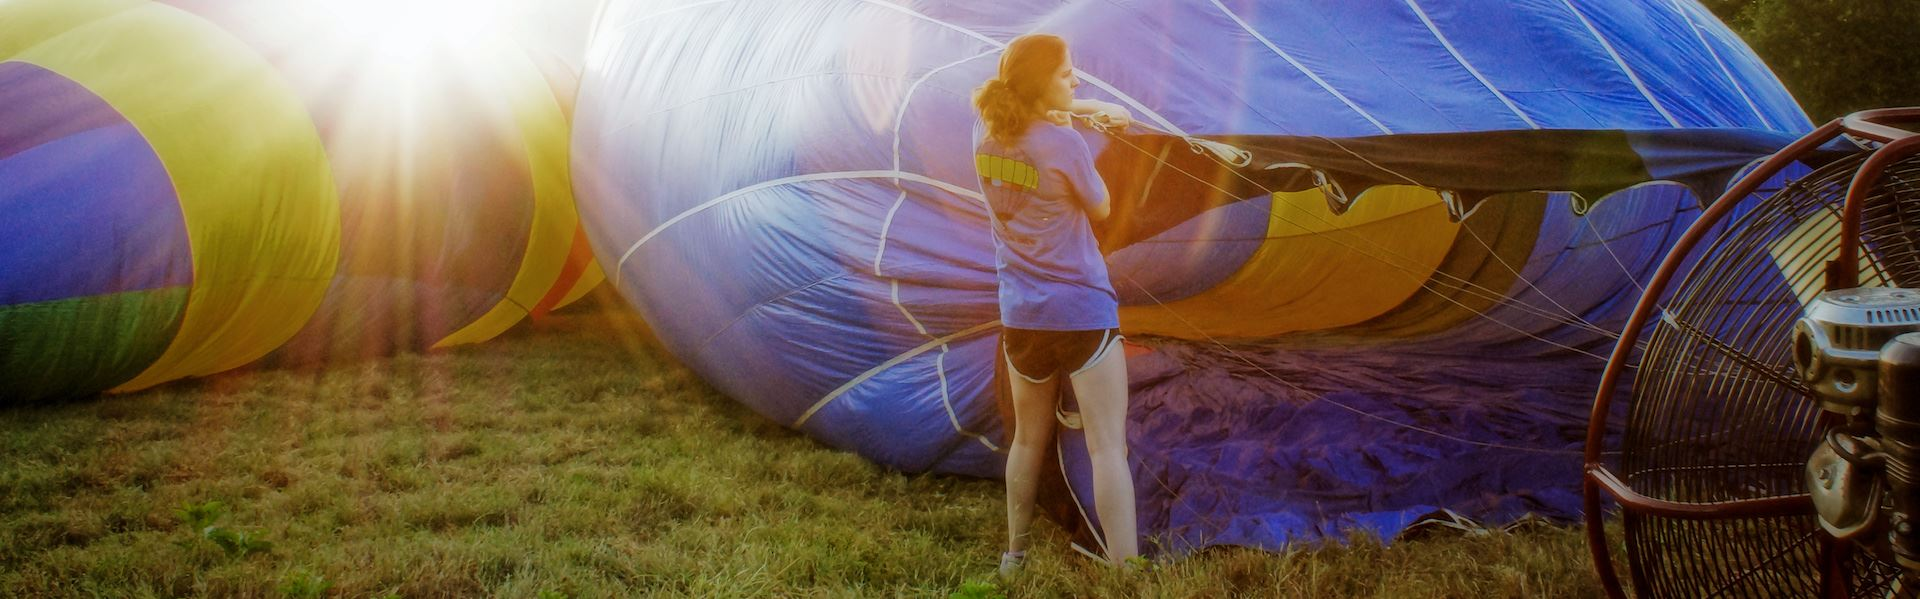 Girl assisting in inflating a hot air balloon